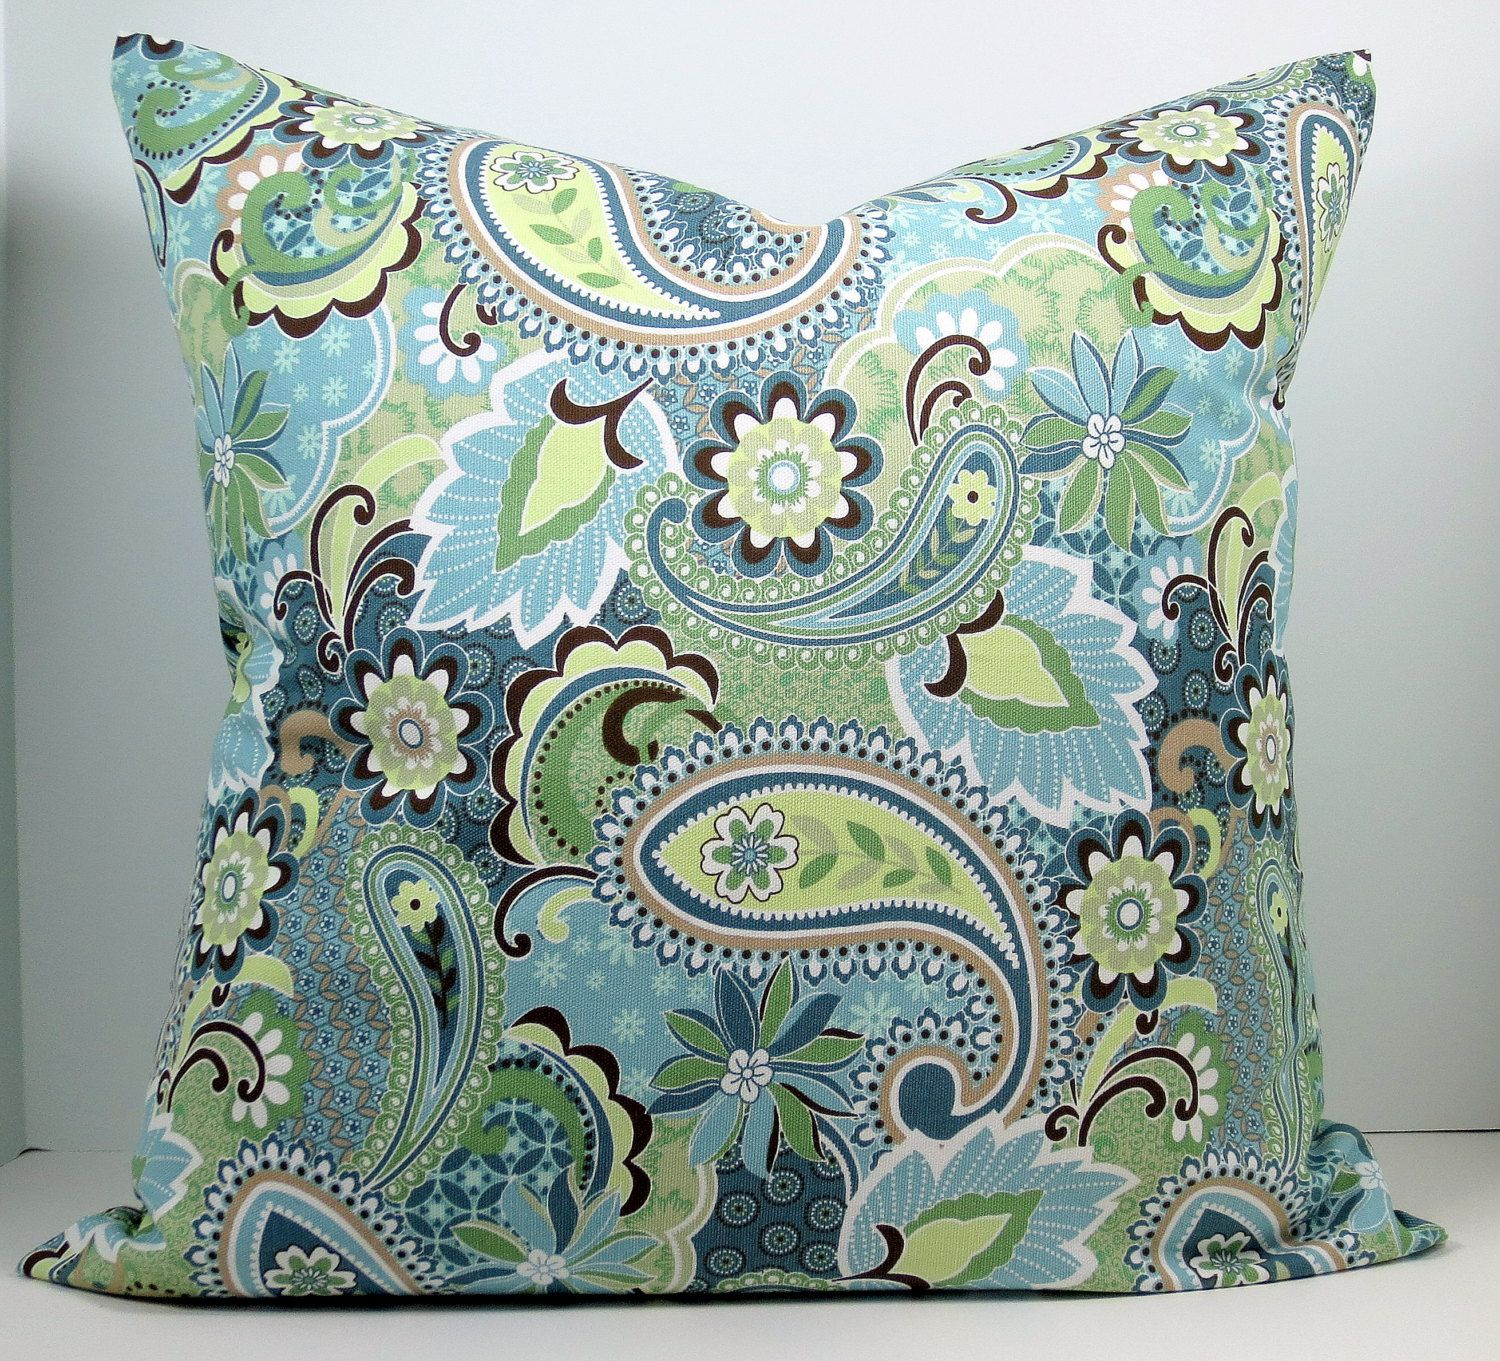 Shades Of Blue And Green Paisley Decorative Throw Pillow Cover